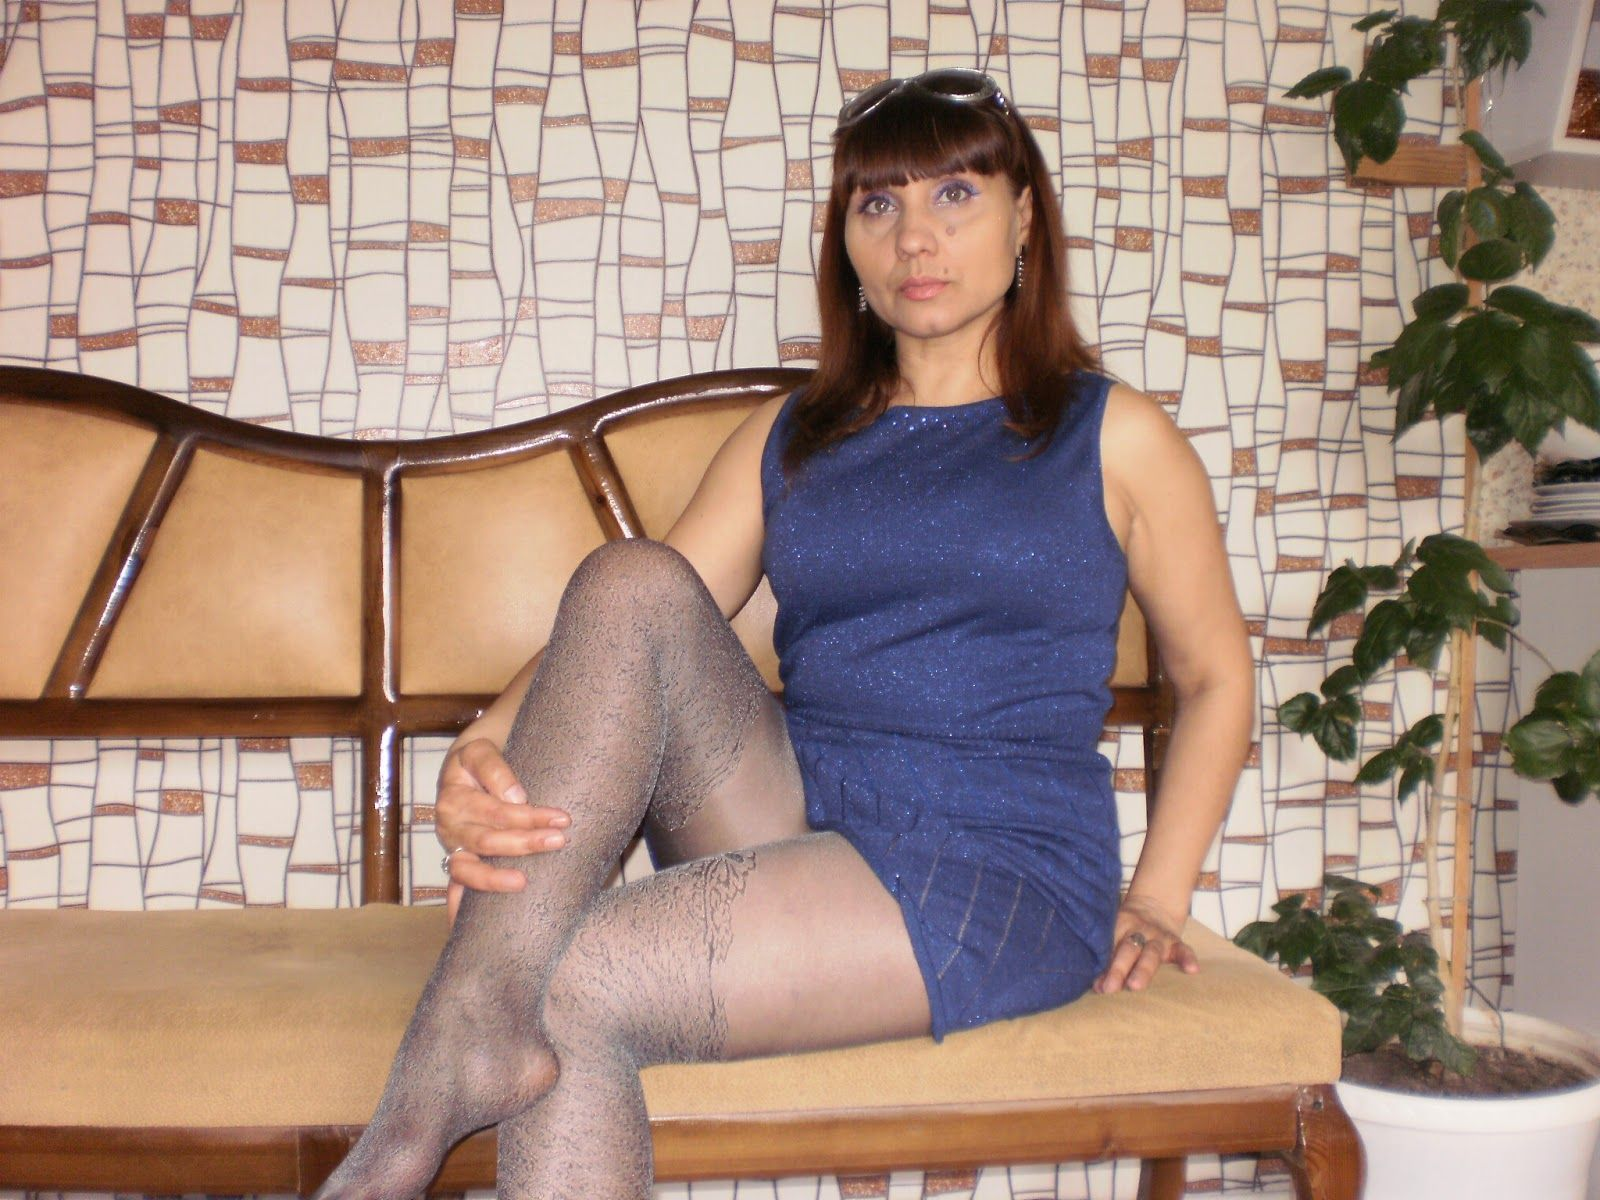 pantyhose milf in blue dress | hot mature ladies, milfs and gilfs